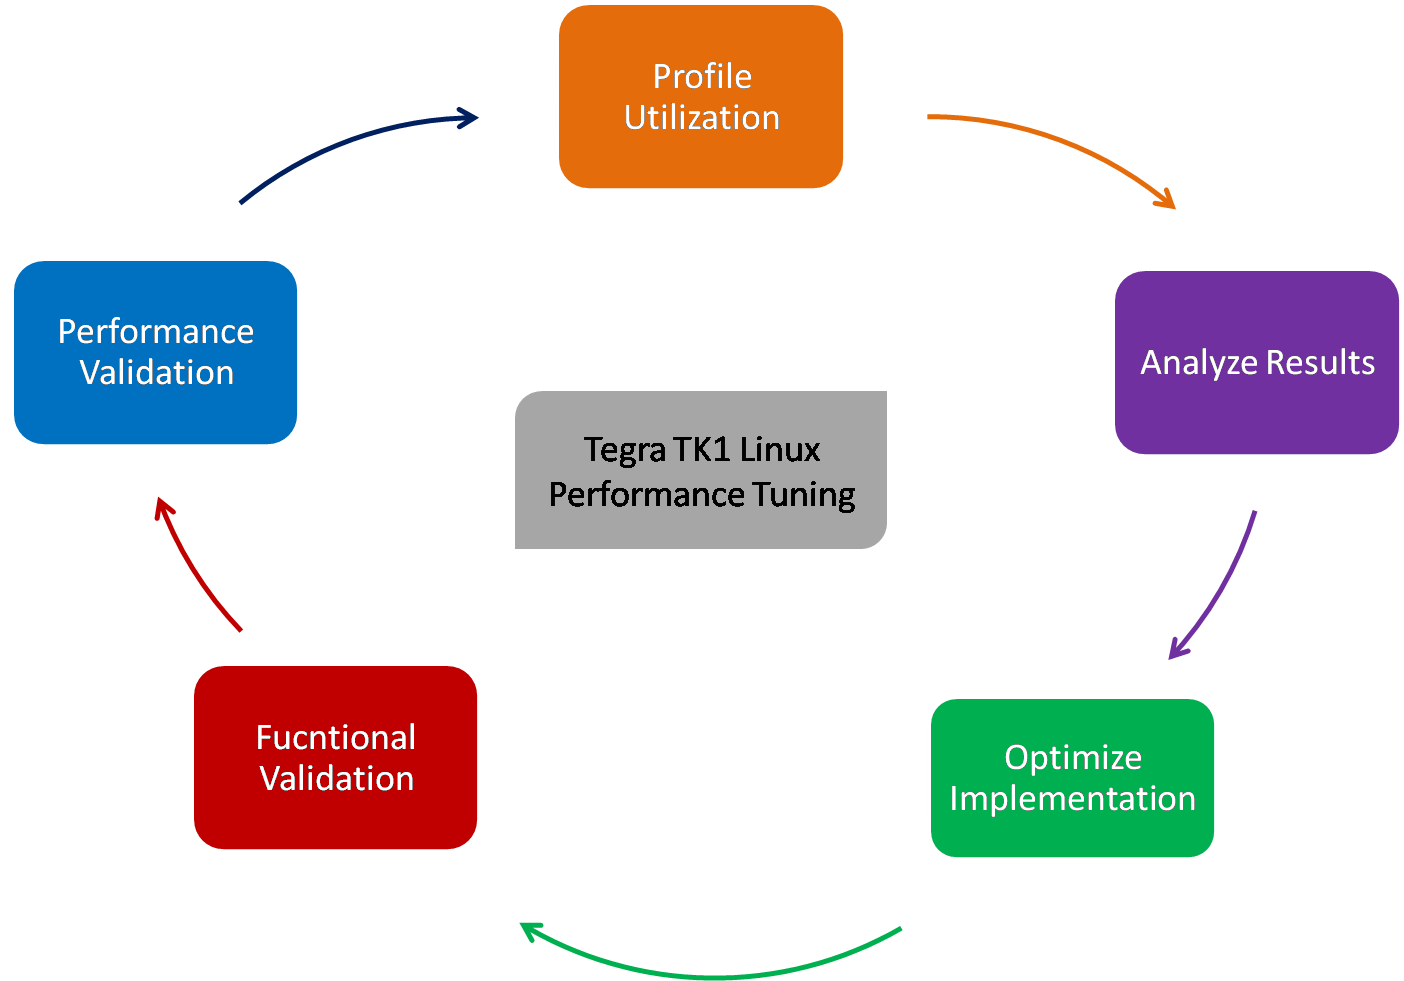 Tegra TK1 Linux Performance tuning and automated deployment